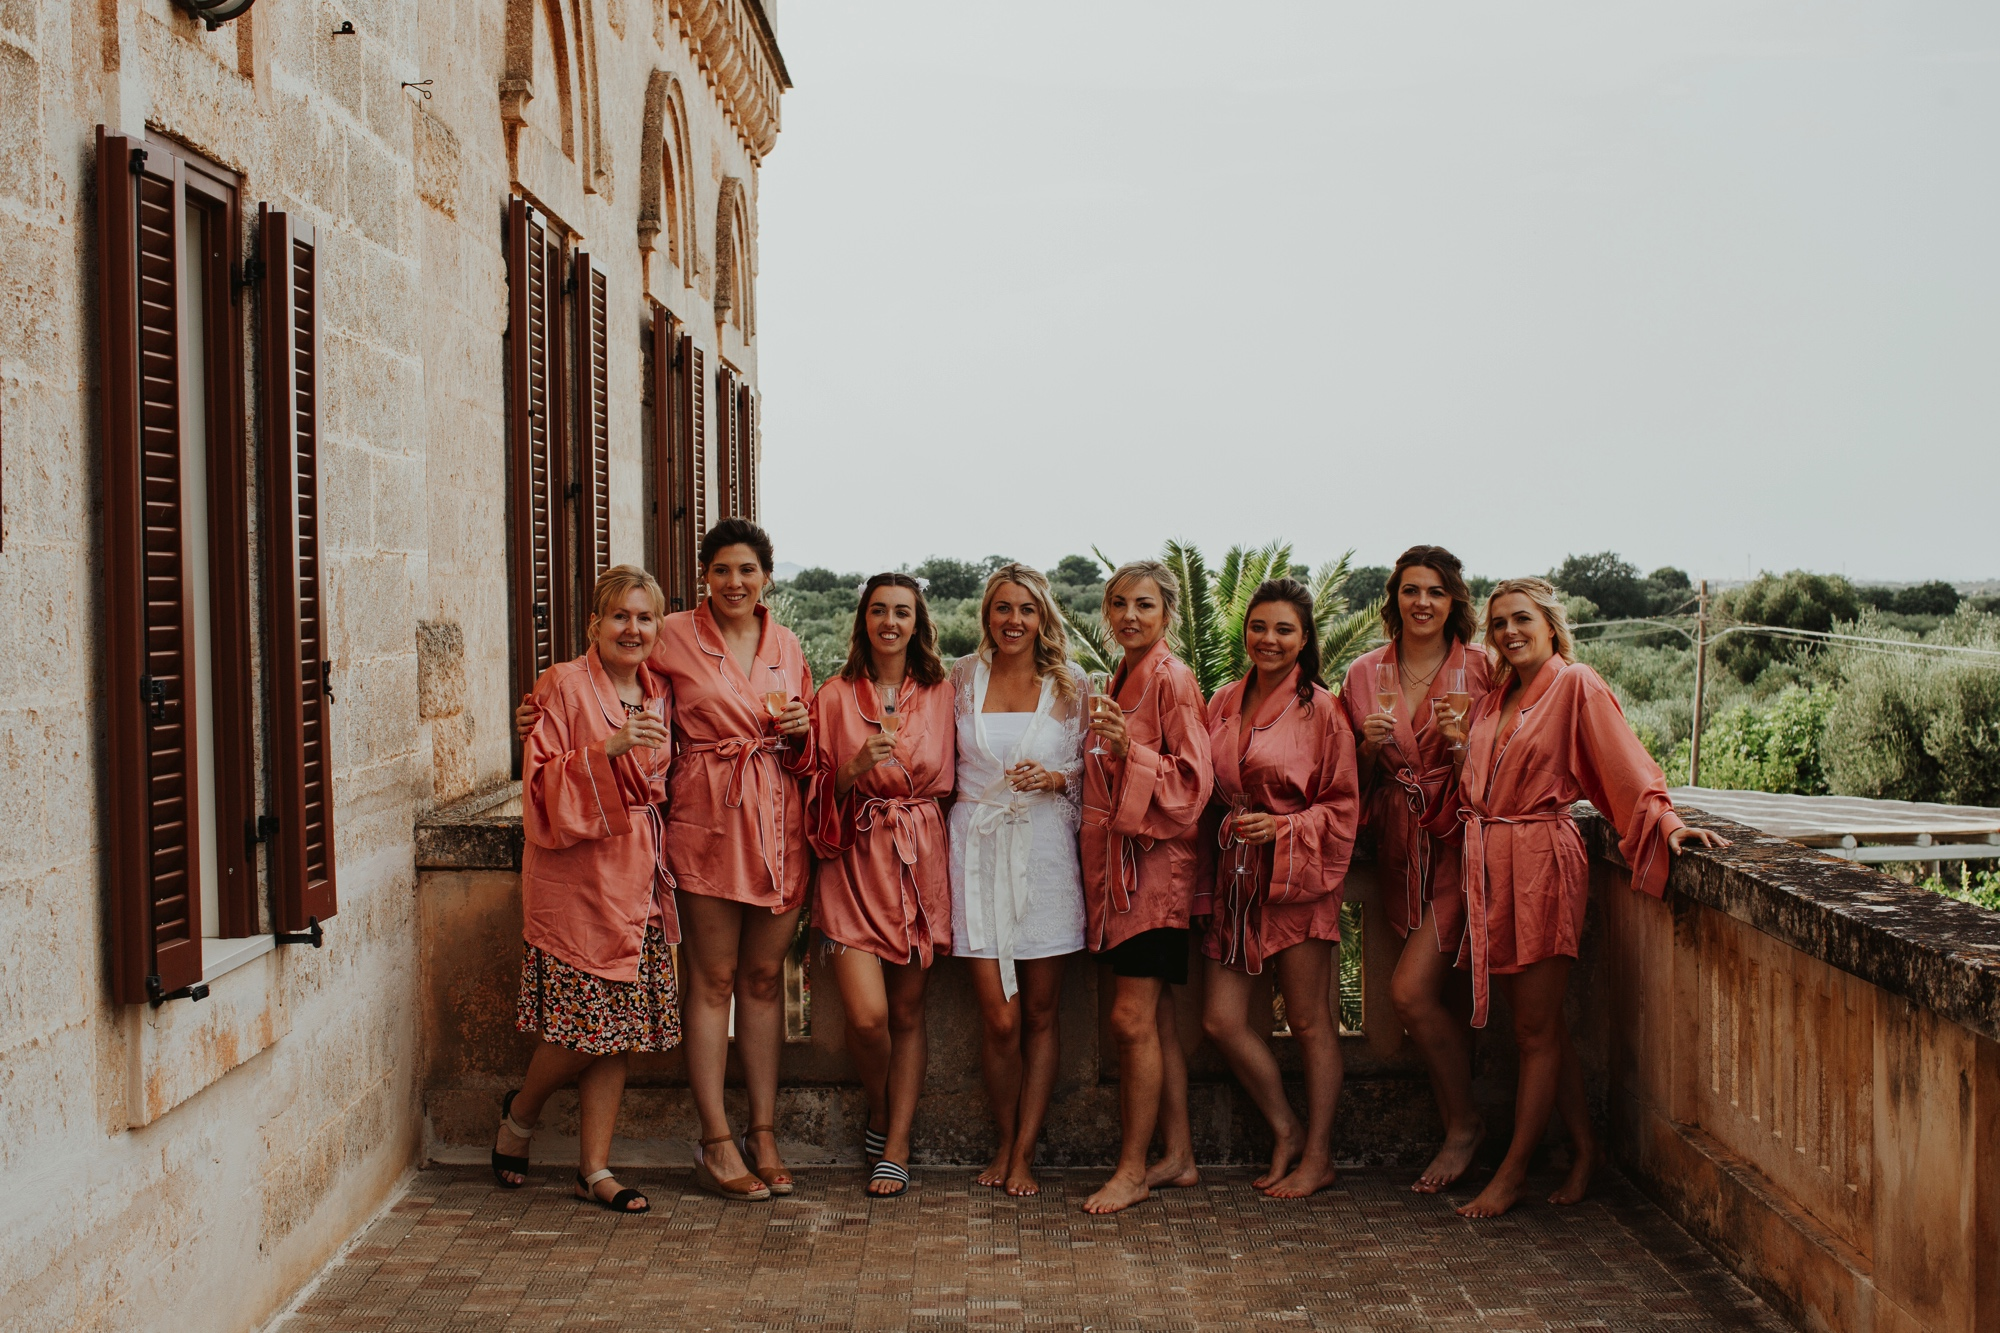 0000000026_Rob and Lucy-130_Weddings_Destination_Italy_got_Just_Engaged.jpg